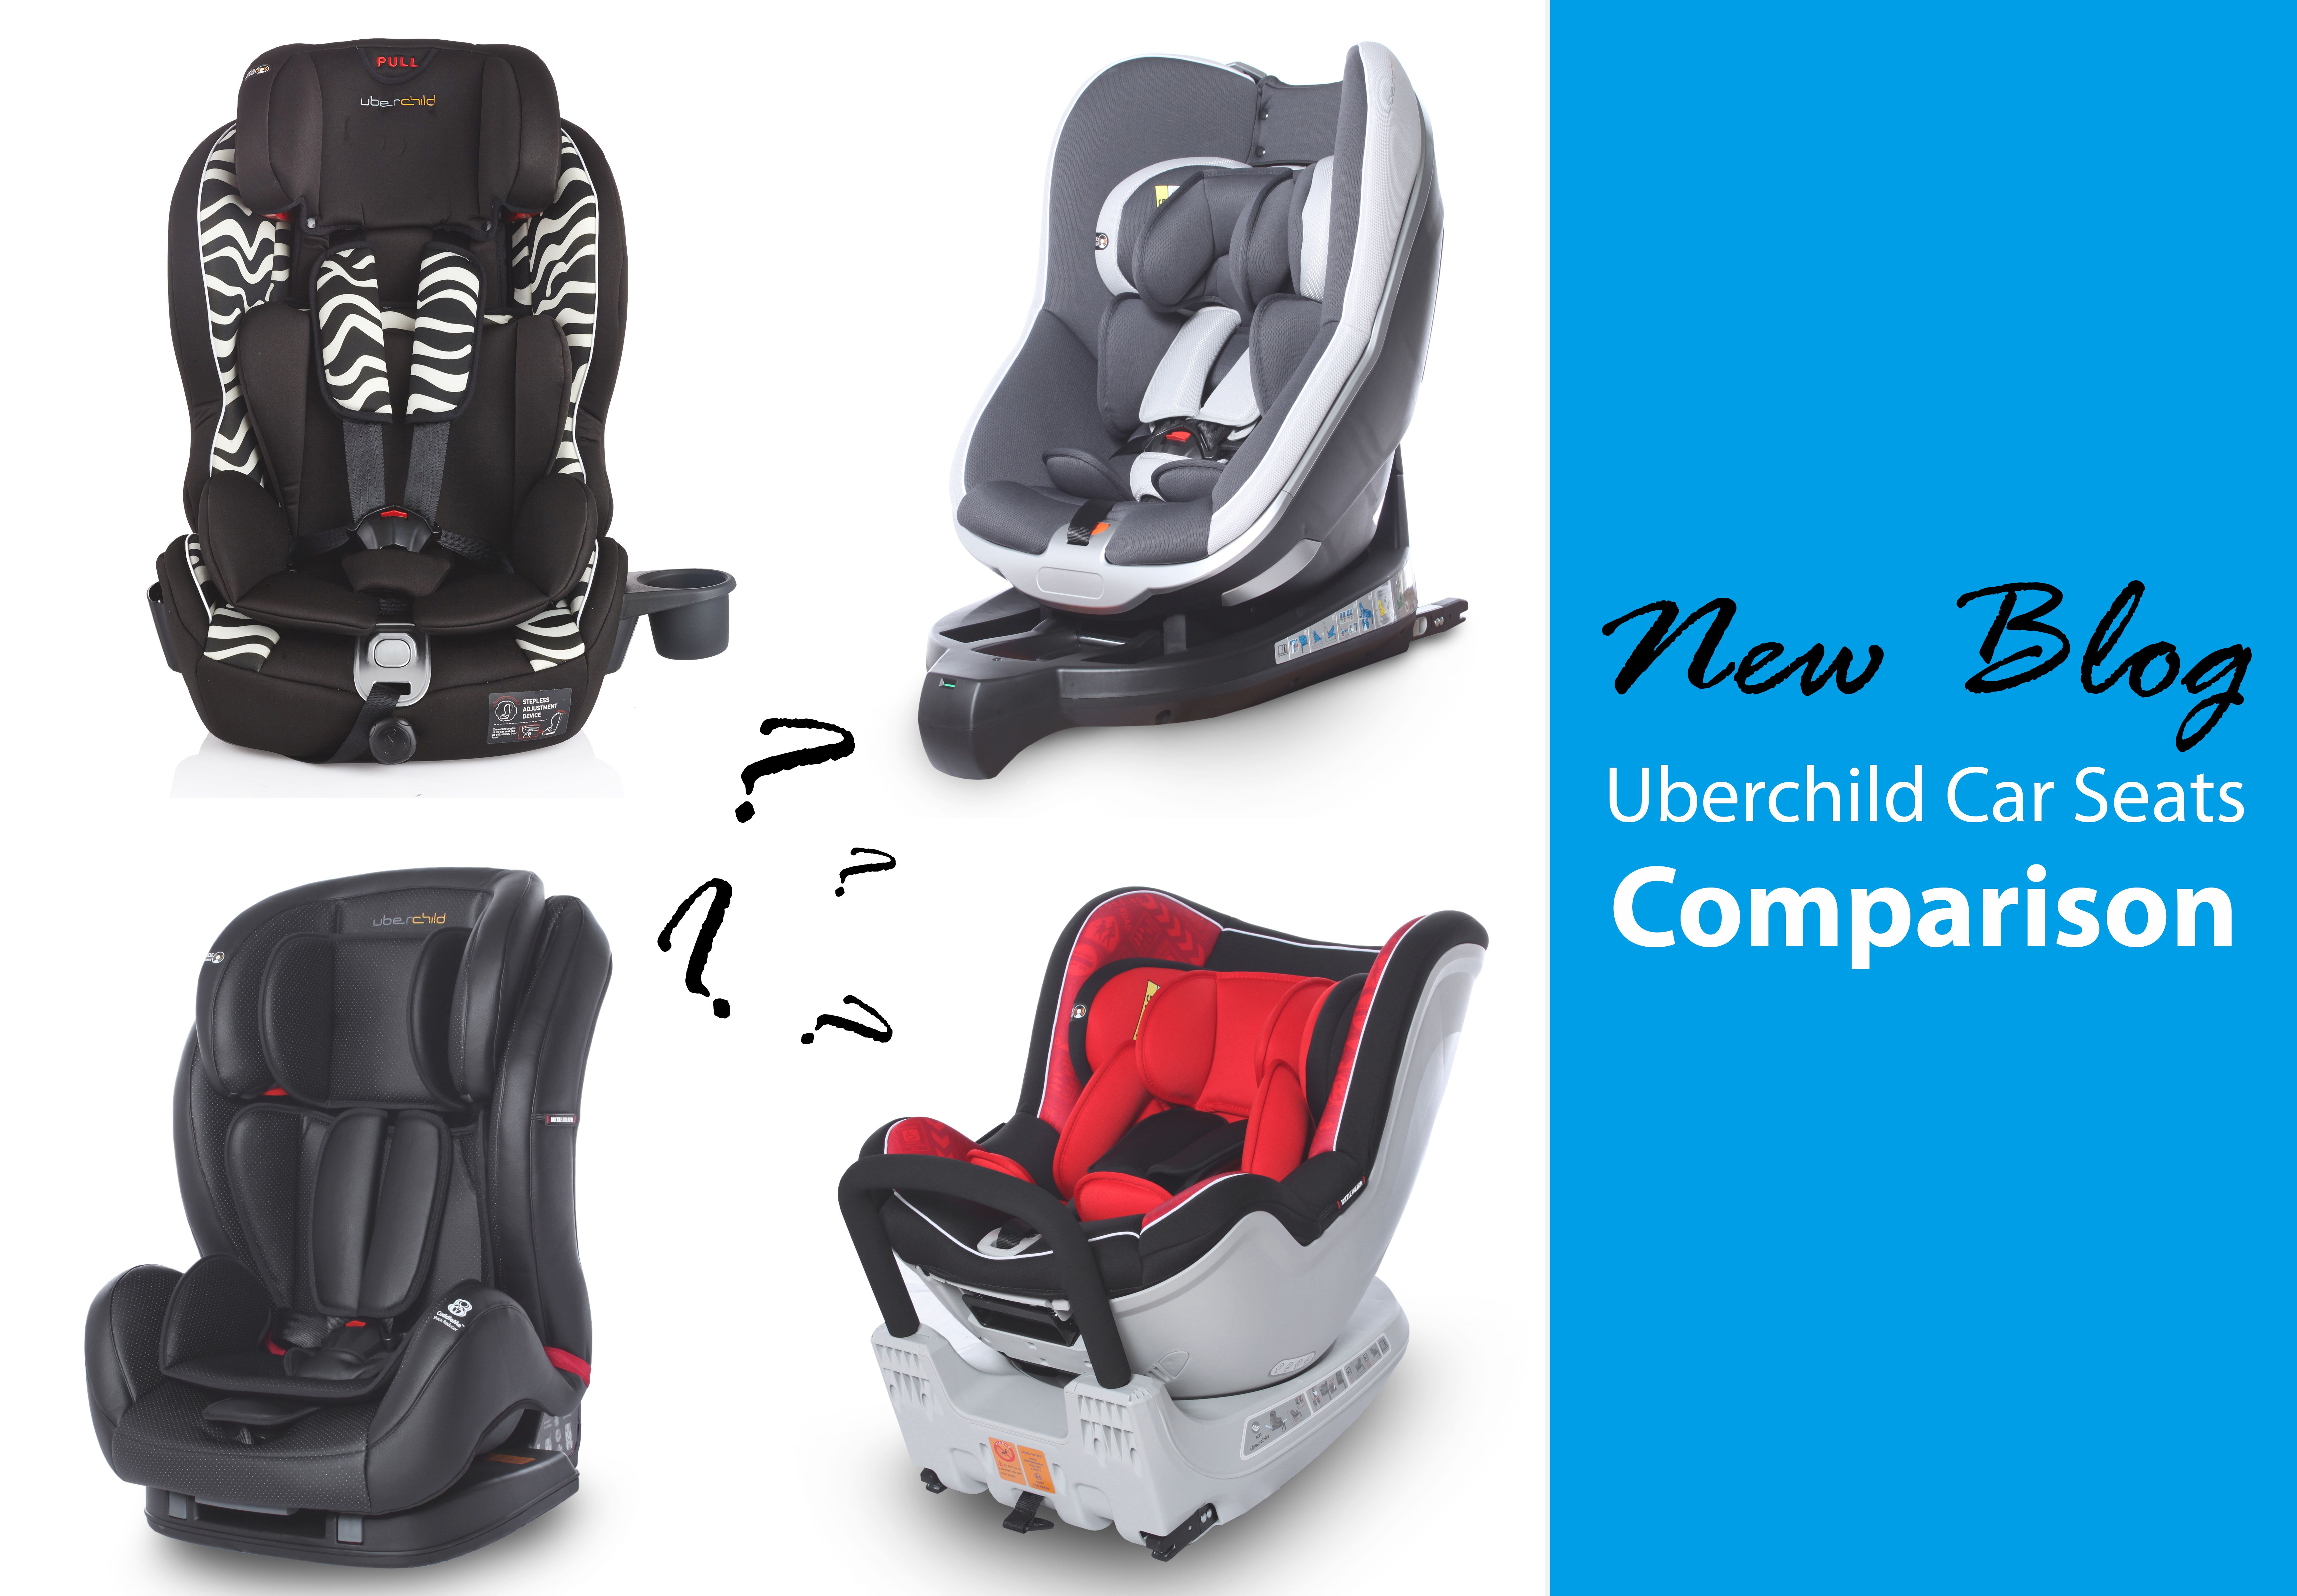 Uberchild BLOG If You Are Having Difficulty Choosing Which Car Seat Is Right For